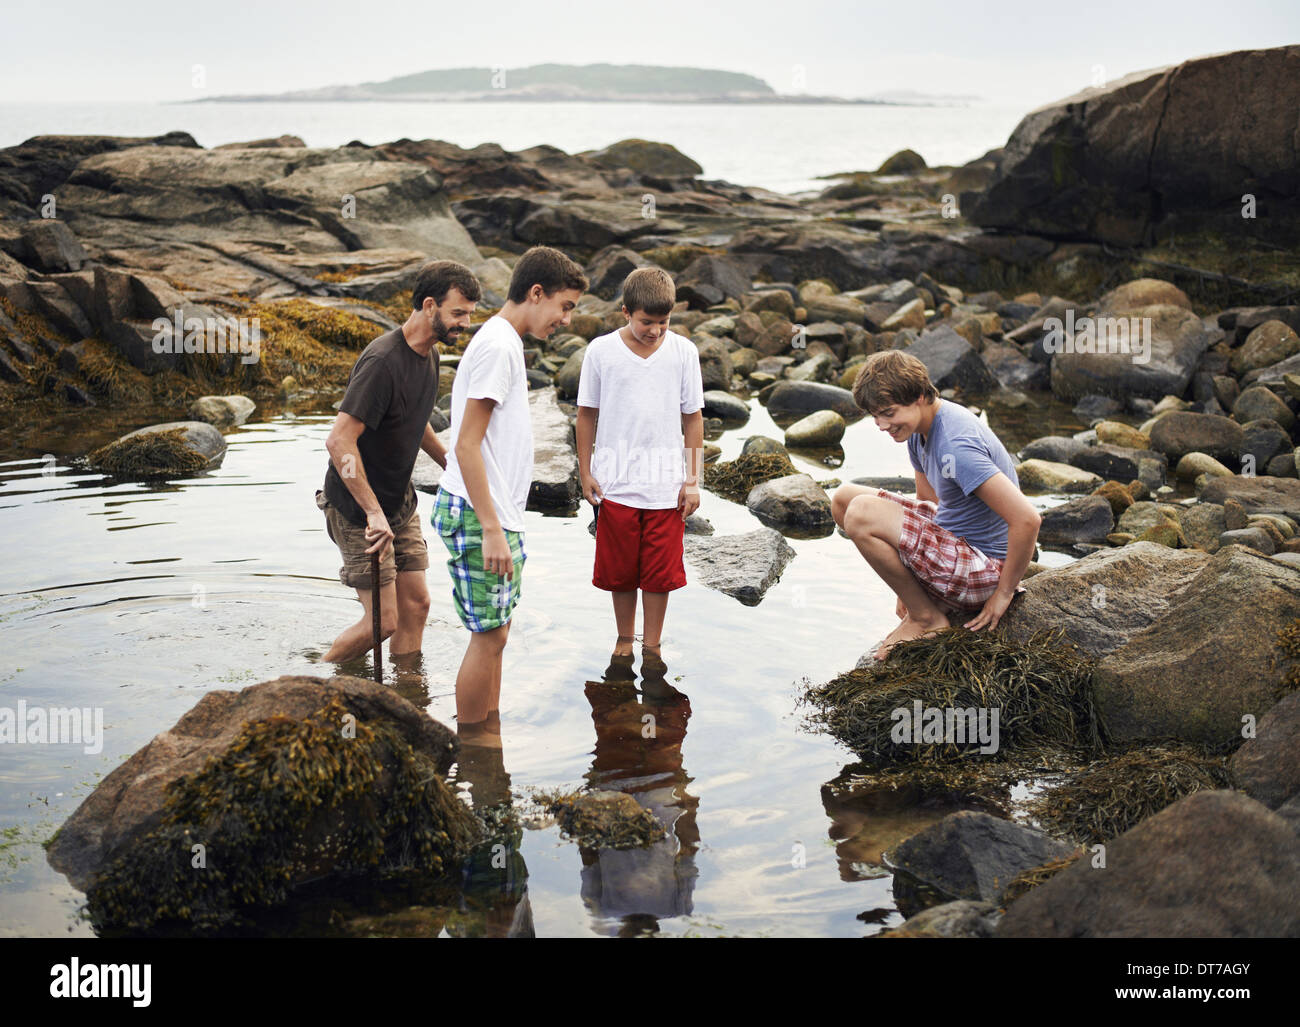 A small group of people standing in shallow water rock pooling finding marine life on the beach USA - Stock Image